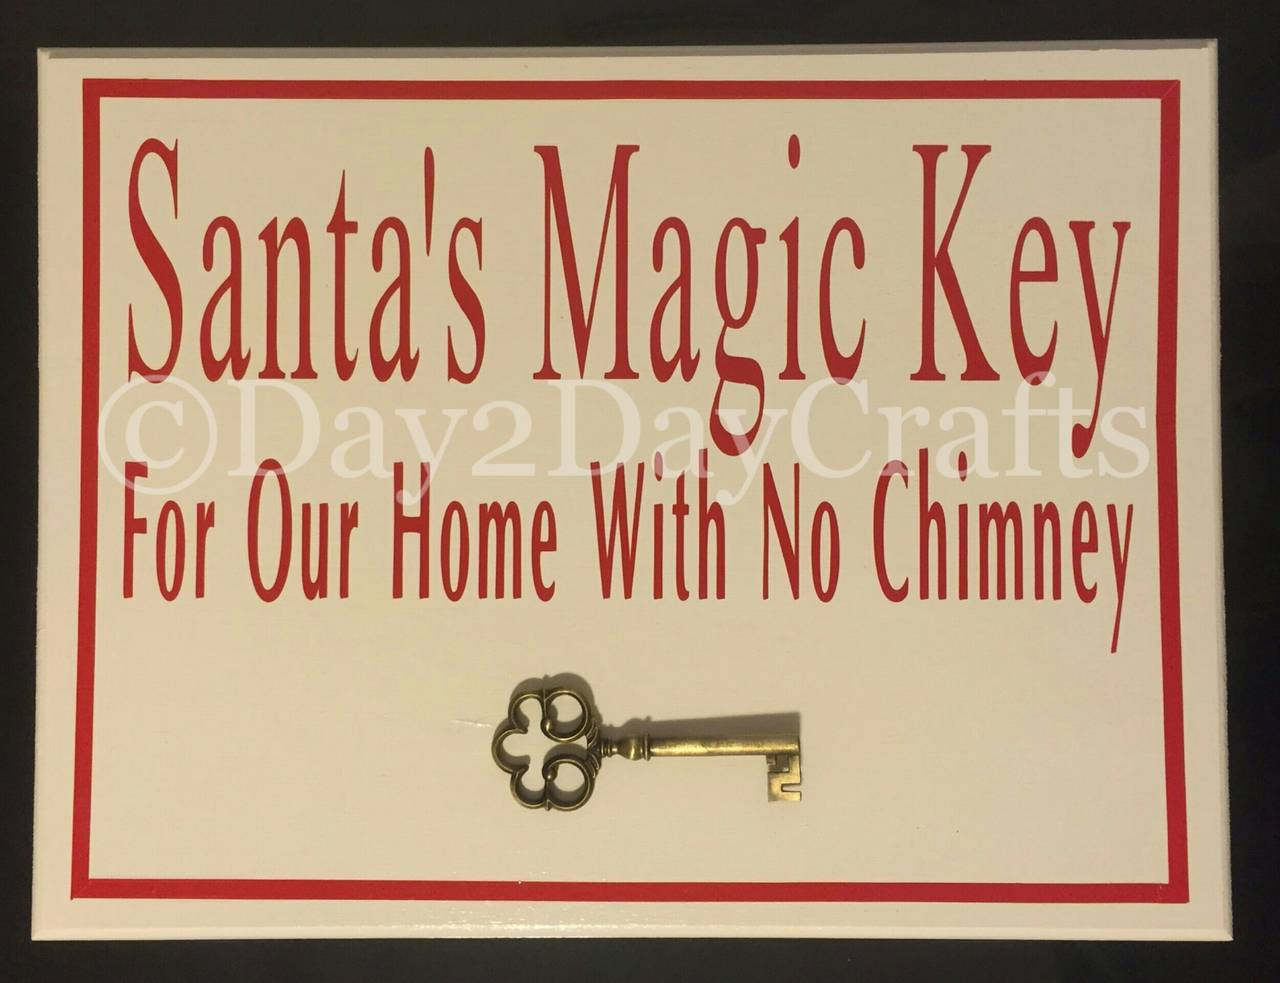 Santa Magic Key Sign